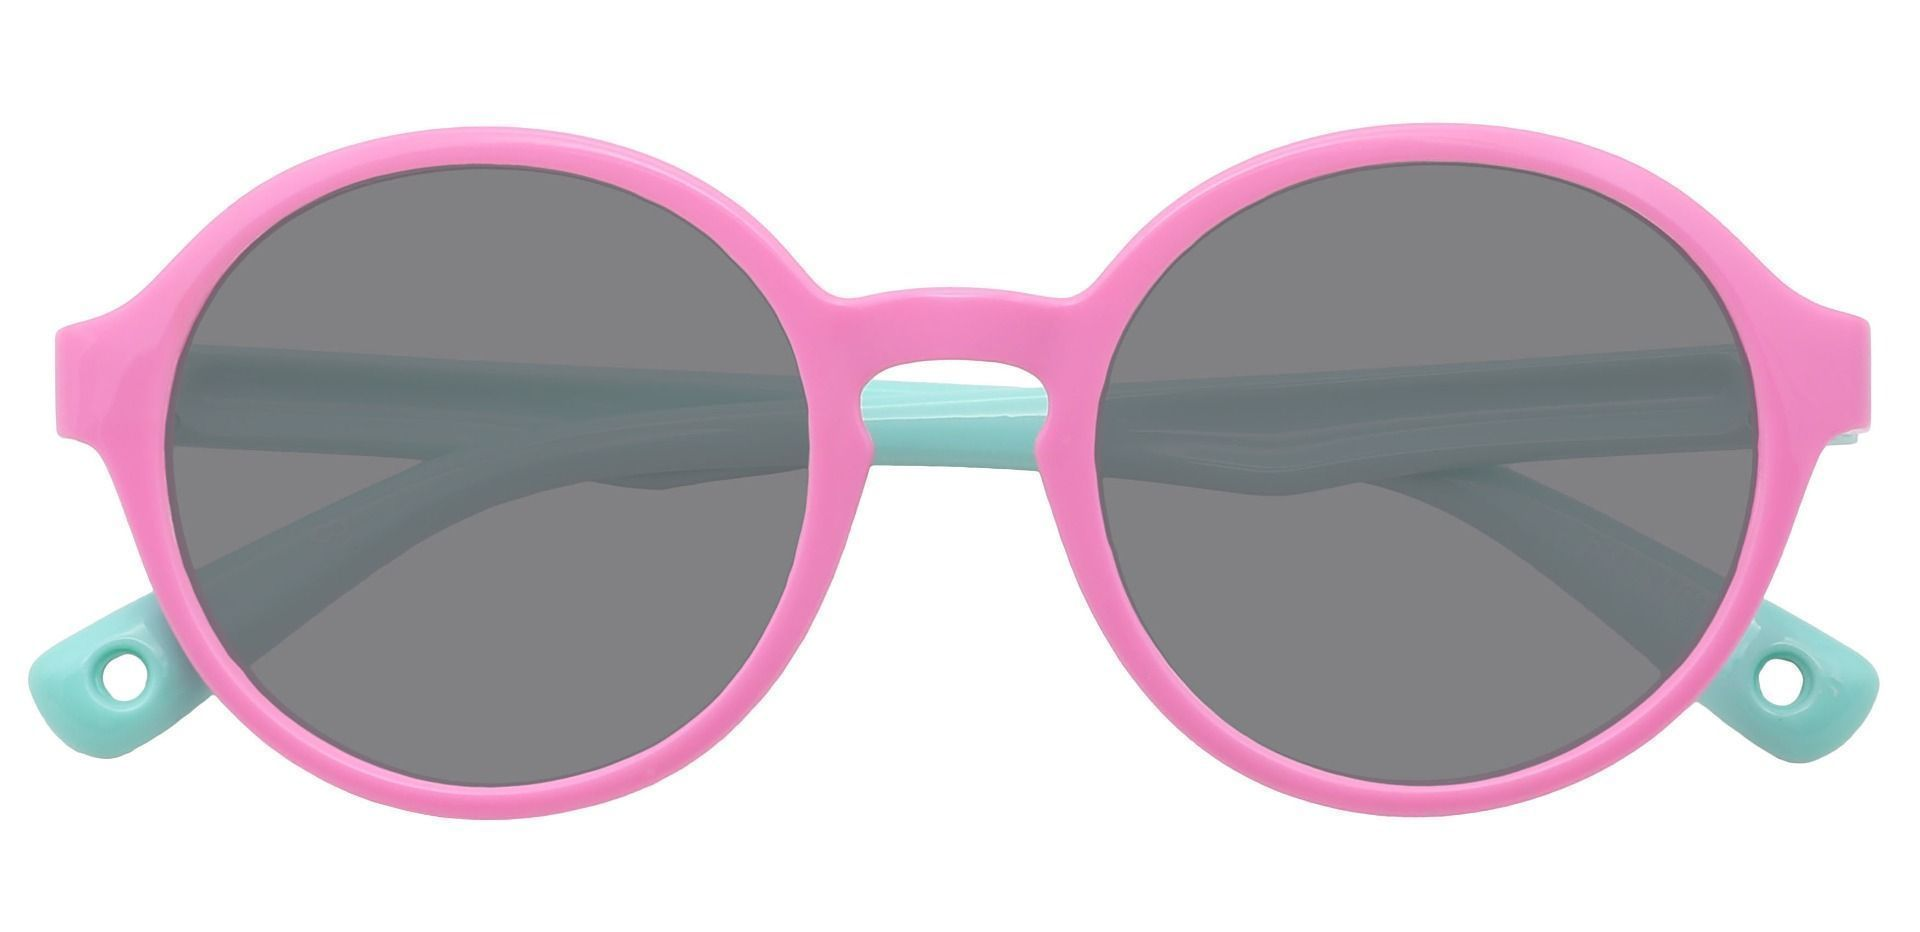 Cotton Candy Round Reading Sunglasses - Pink Frame With Gray Lenses